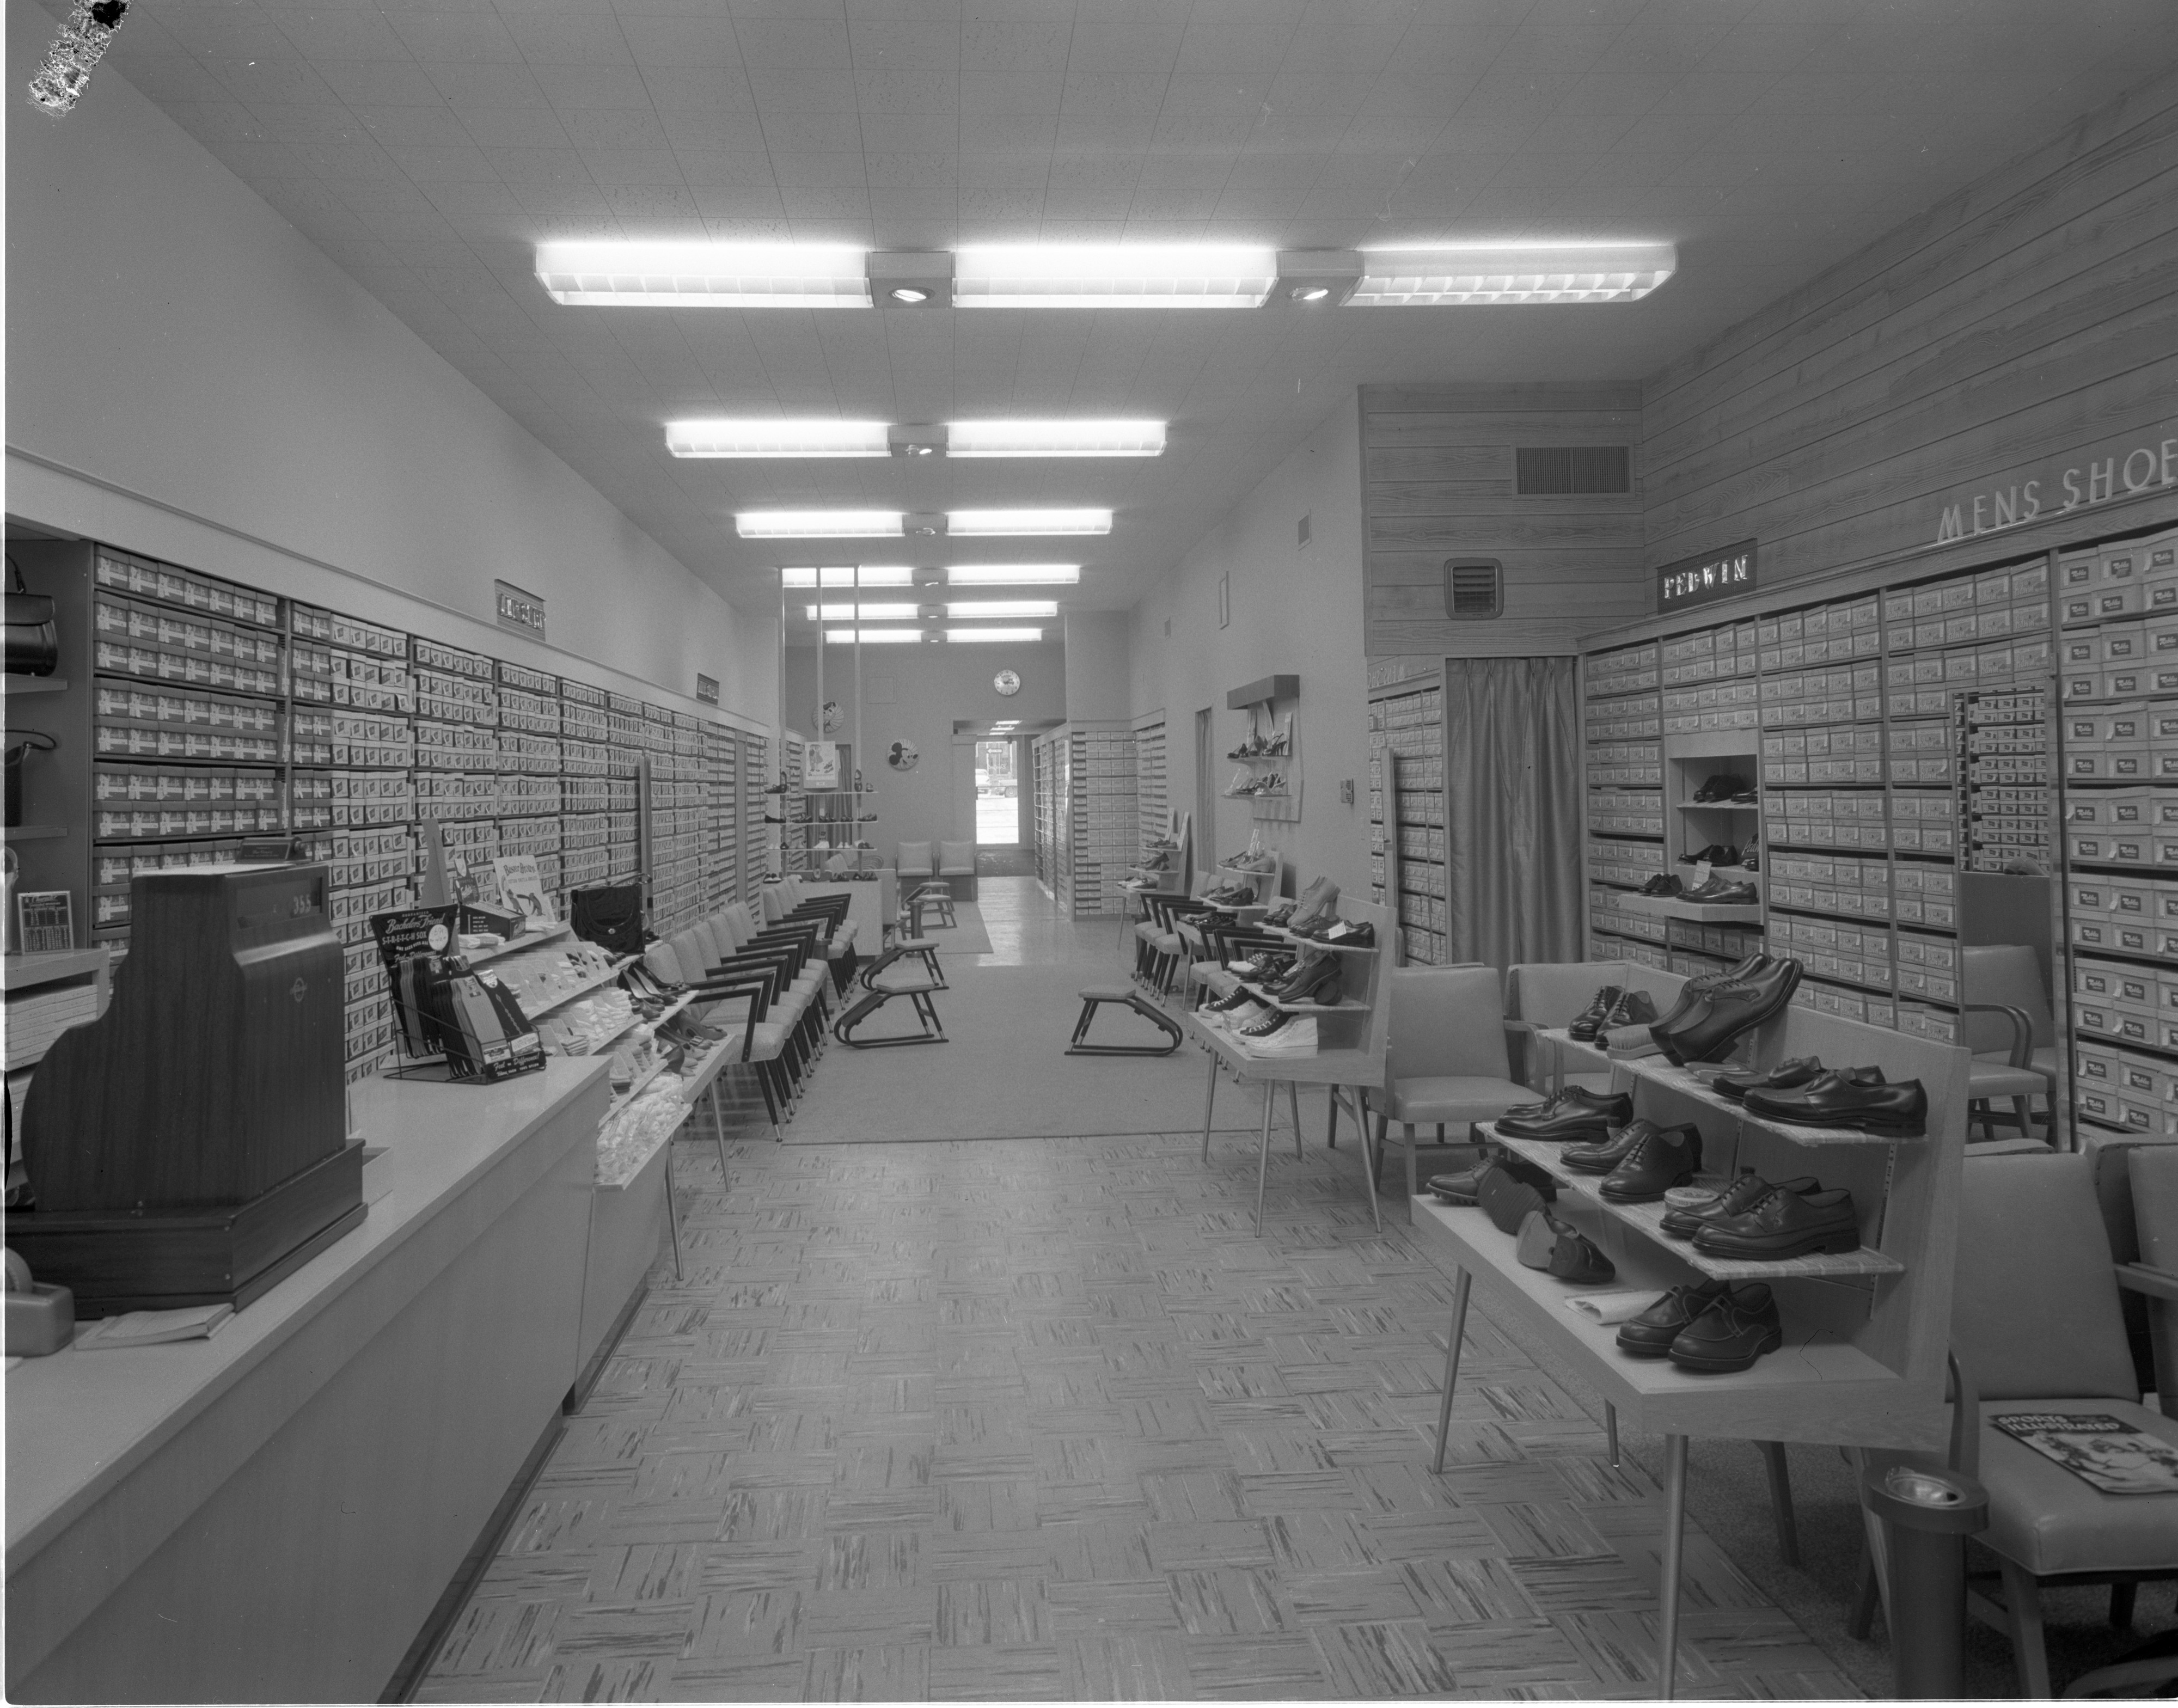 Interior Of Dietzel's Shoe Store, February 1958 image